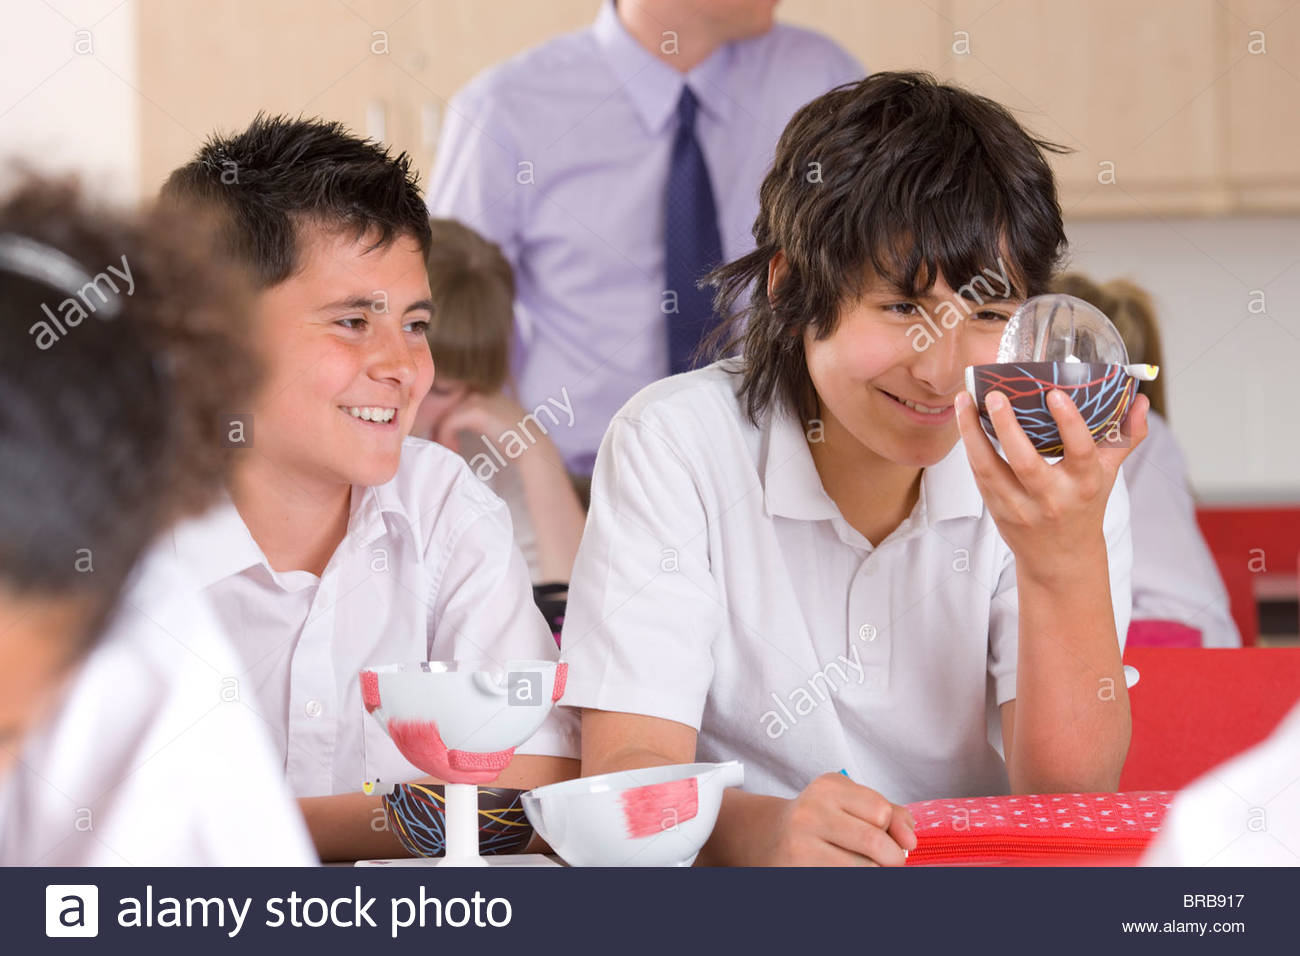 School boys working with biology model in classroom - Stock Image